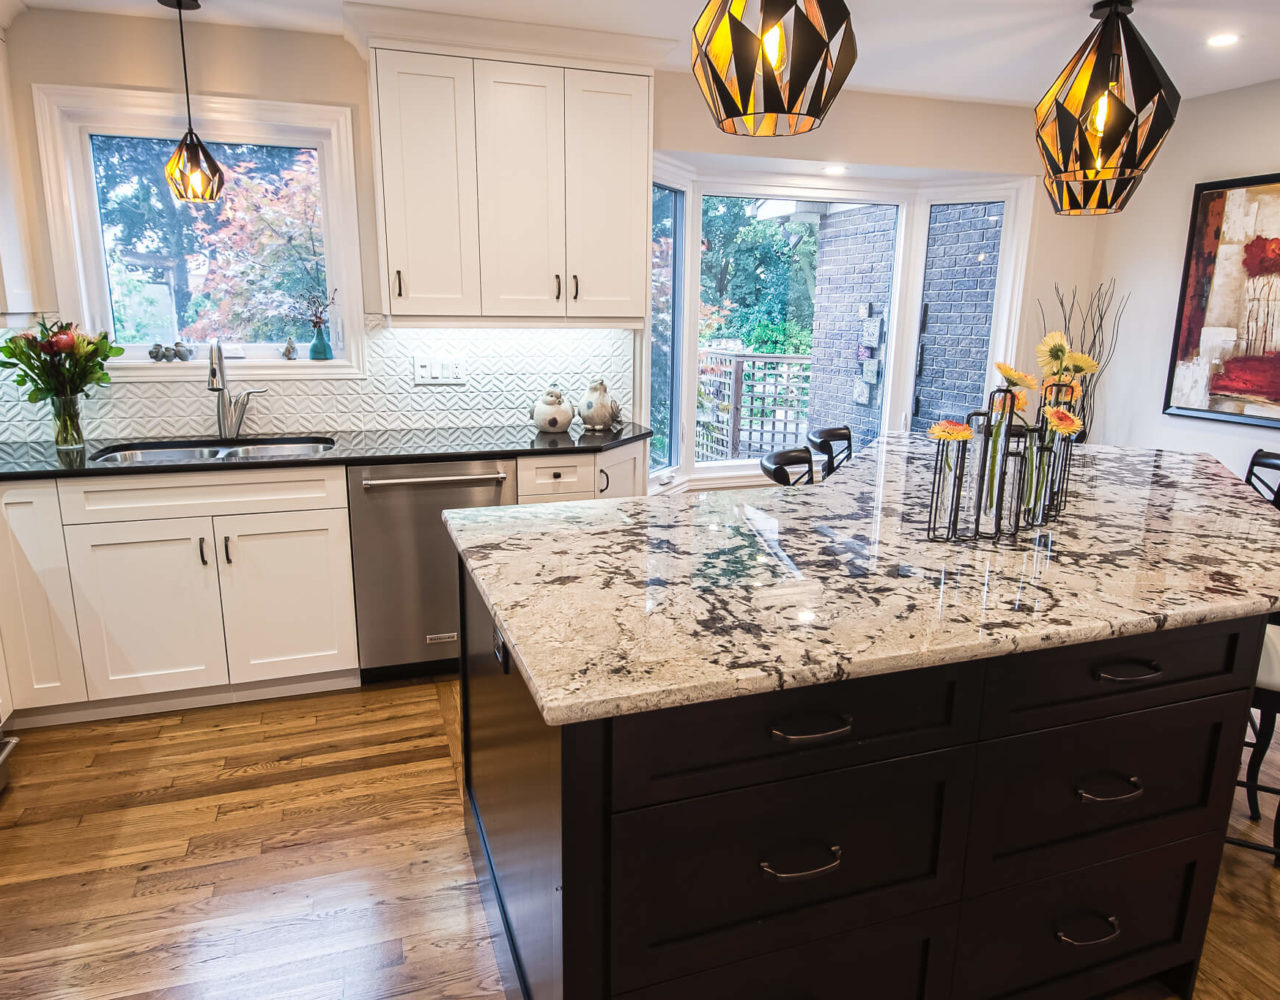 Island - Royal White granite, Perimeter- Steel Patina Hanstone